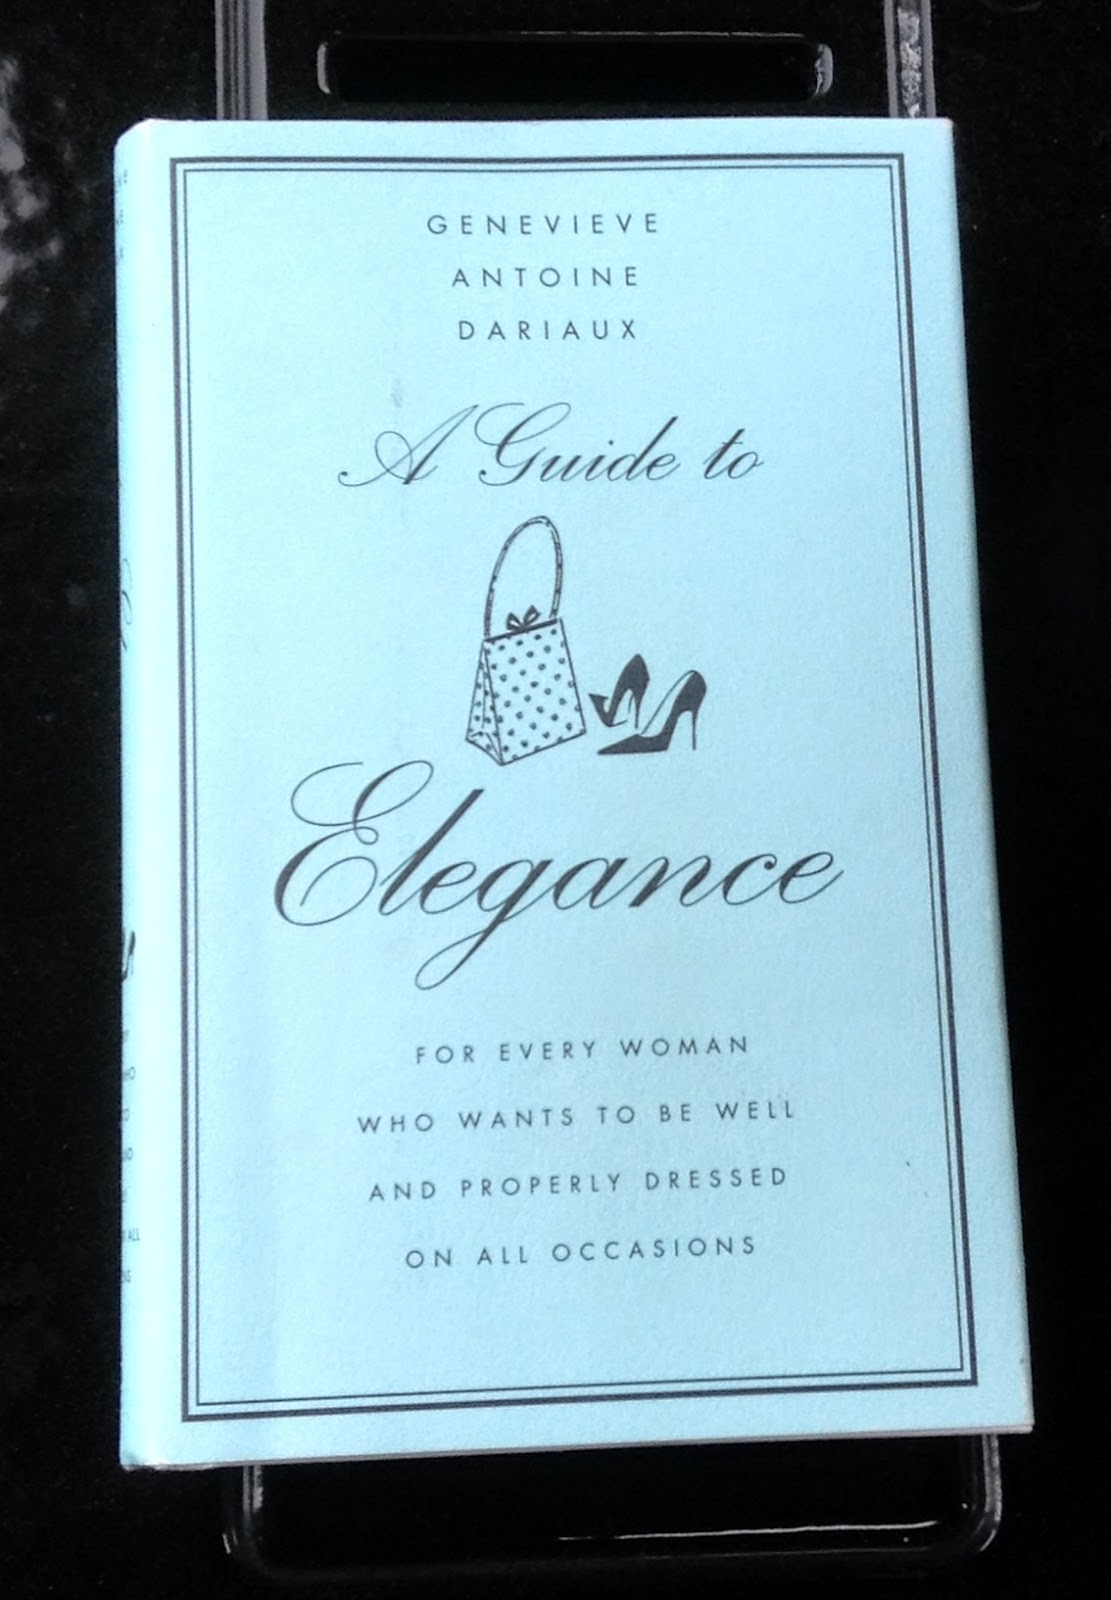 Genevieve Antoine Dariaux's book A Guide to Elegance